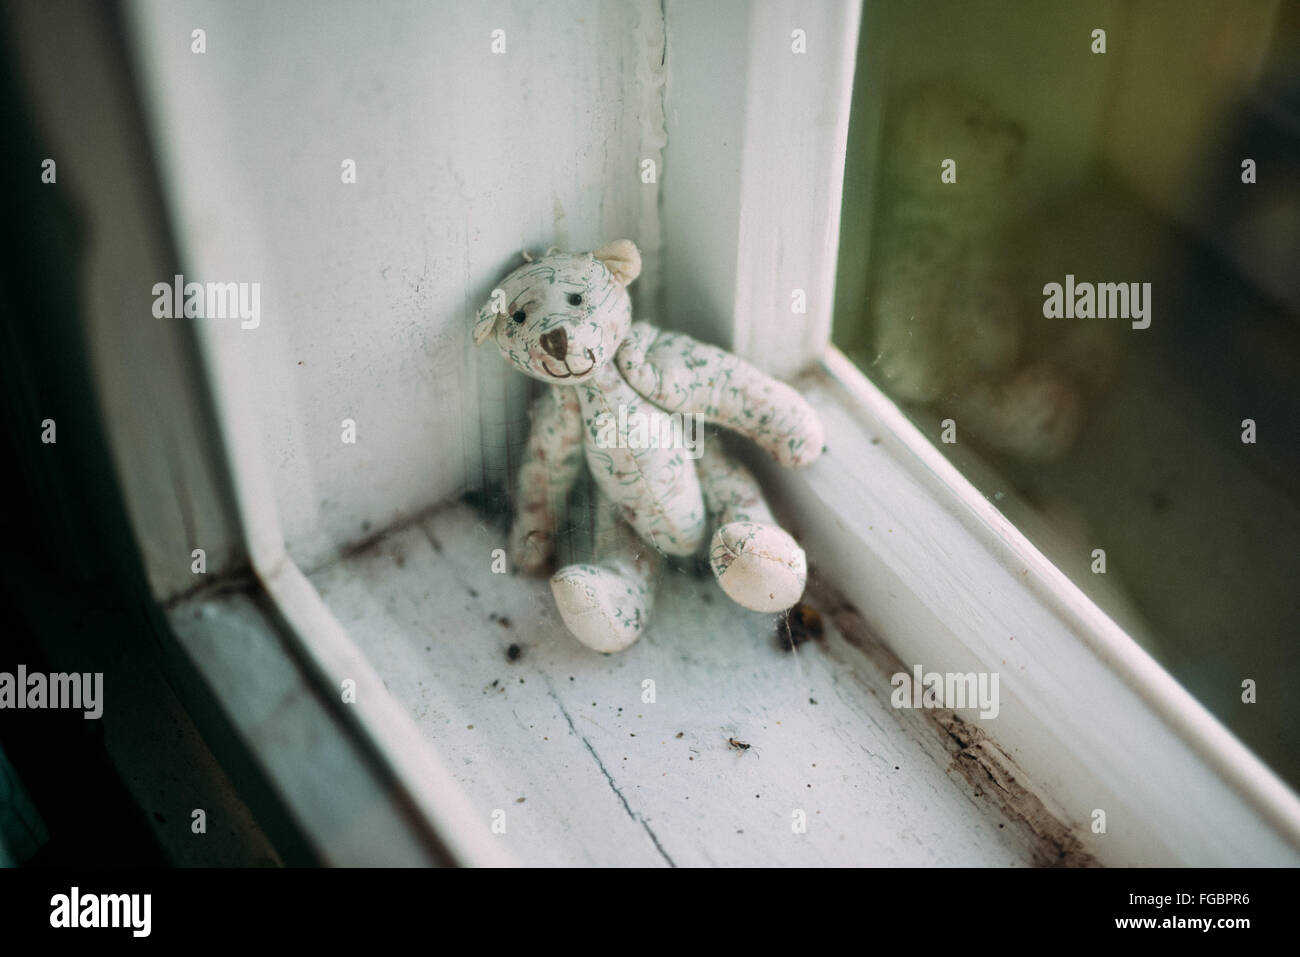 High Angle View Of Stuffed Toy On Window Sill At Home - Stock Image